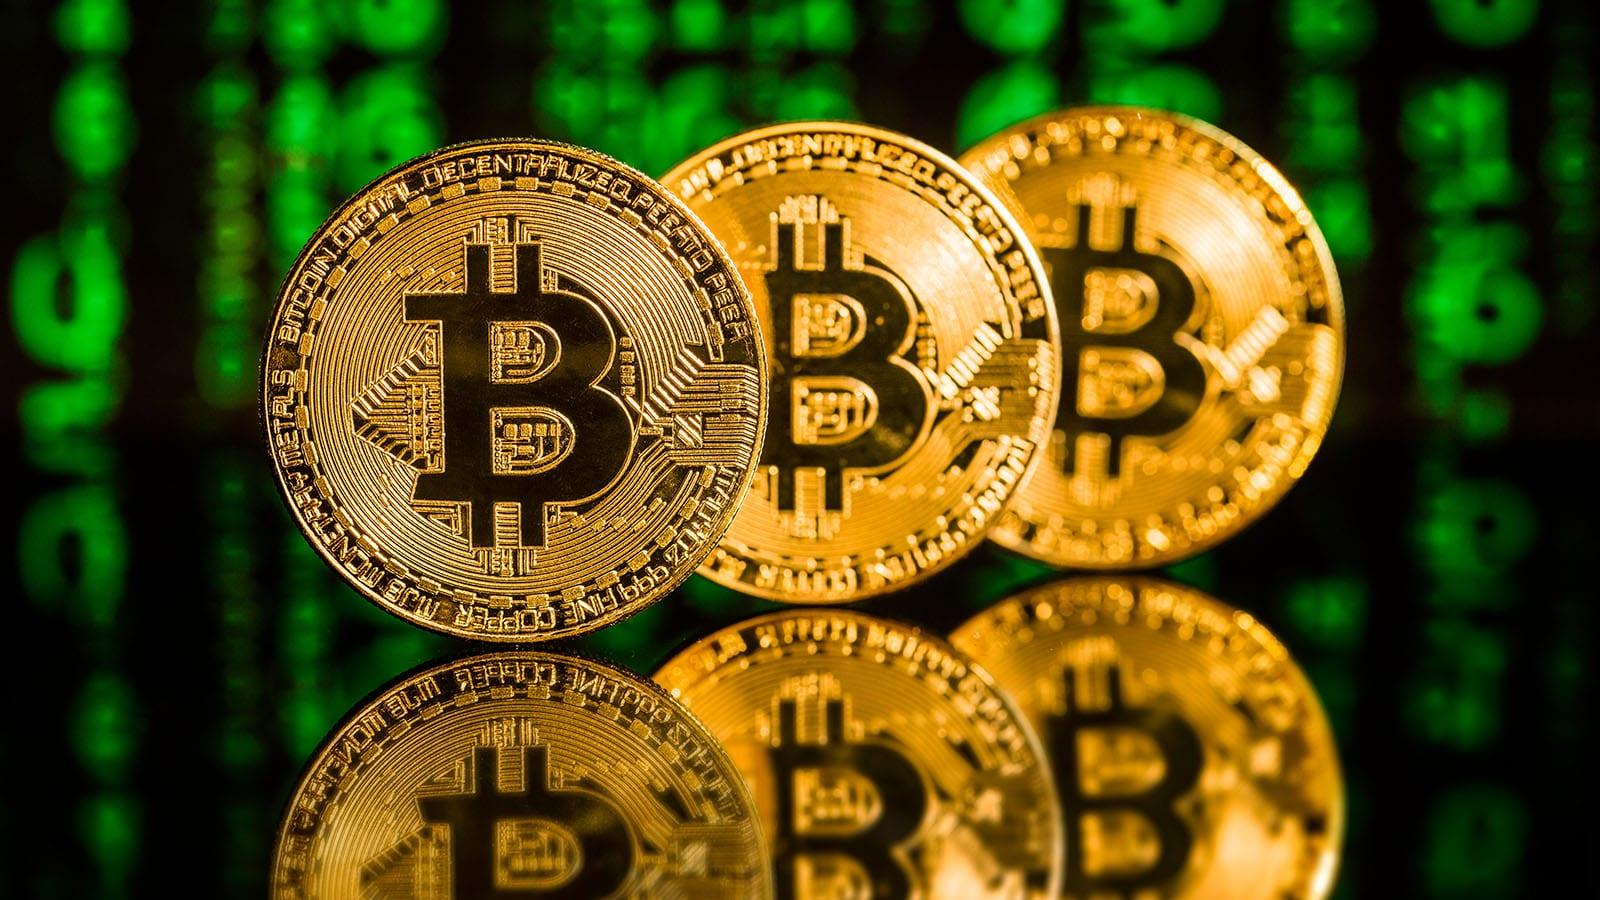 Holdings of cryptocurrencies allow businesses and individuals to transact directly to each other without any intermediary such as banks or financial institutions.